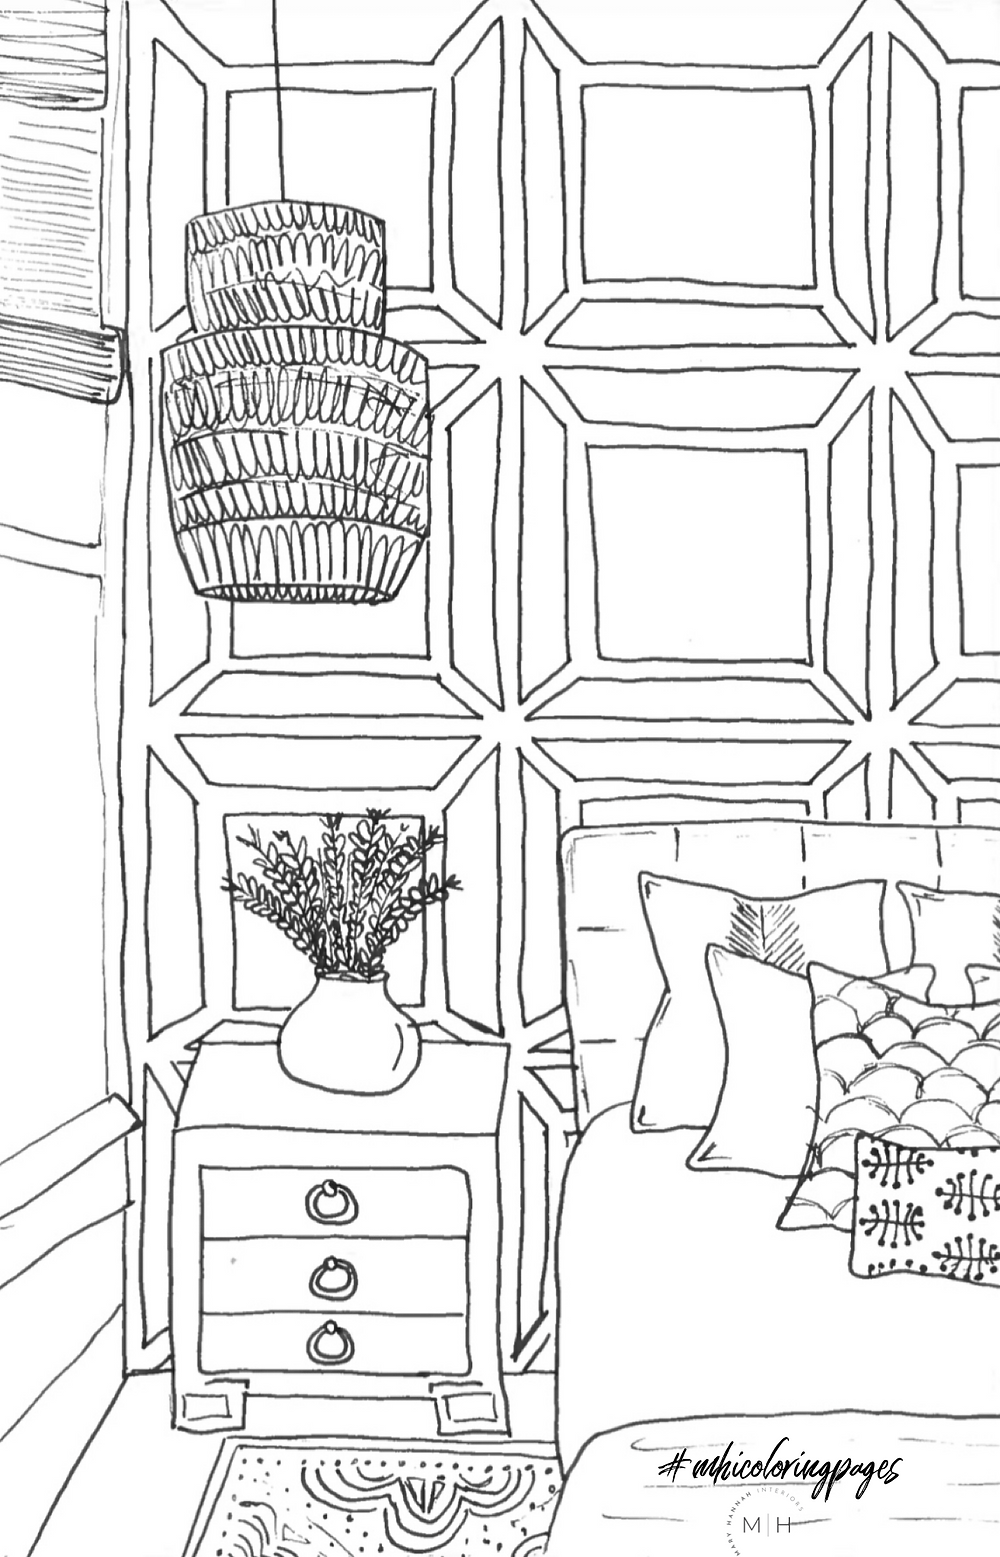 Mary Hannah Interiors Coloring Book Pages | Studio Blog | COVID Quarantine